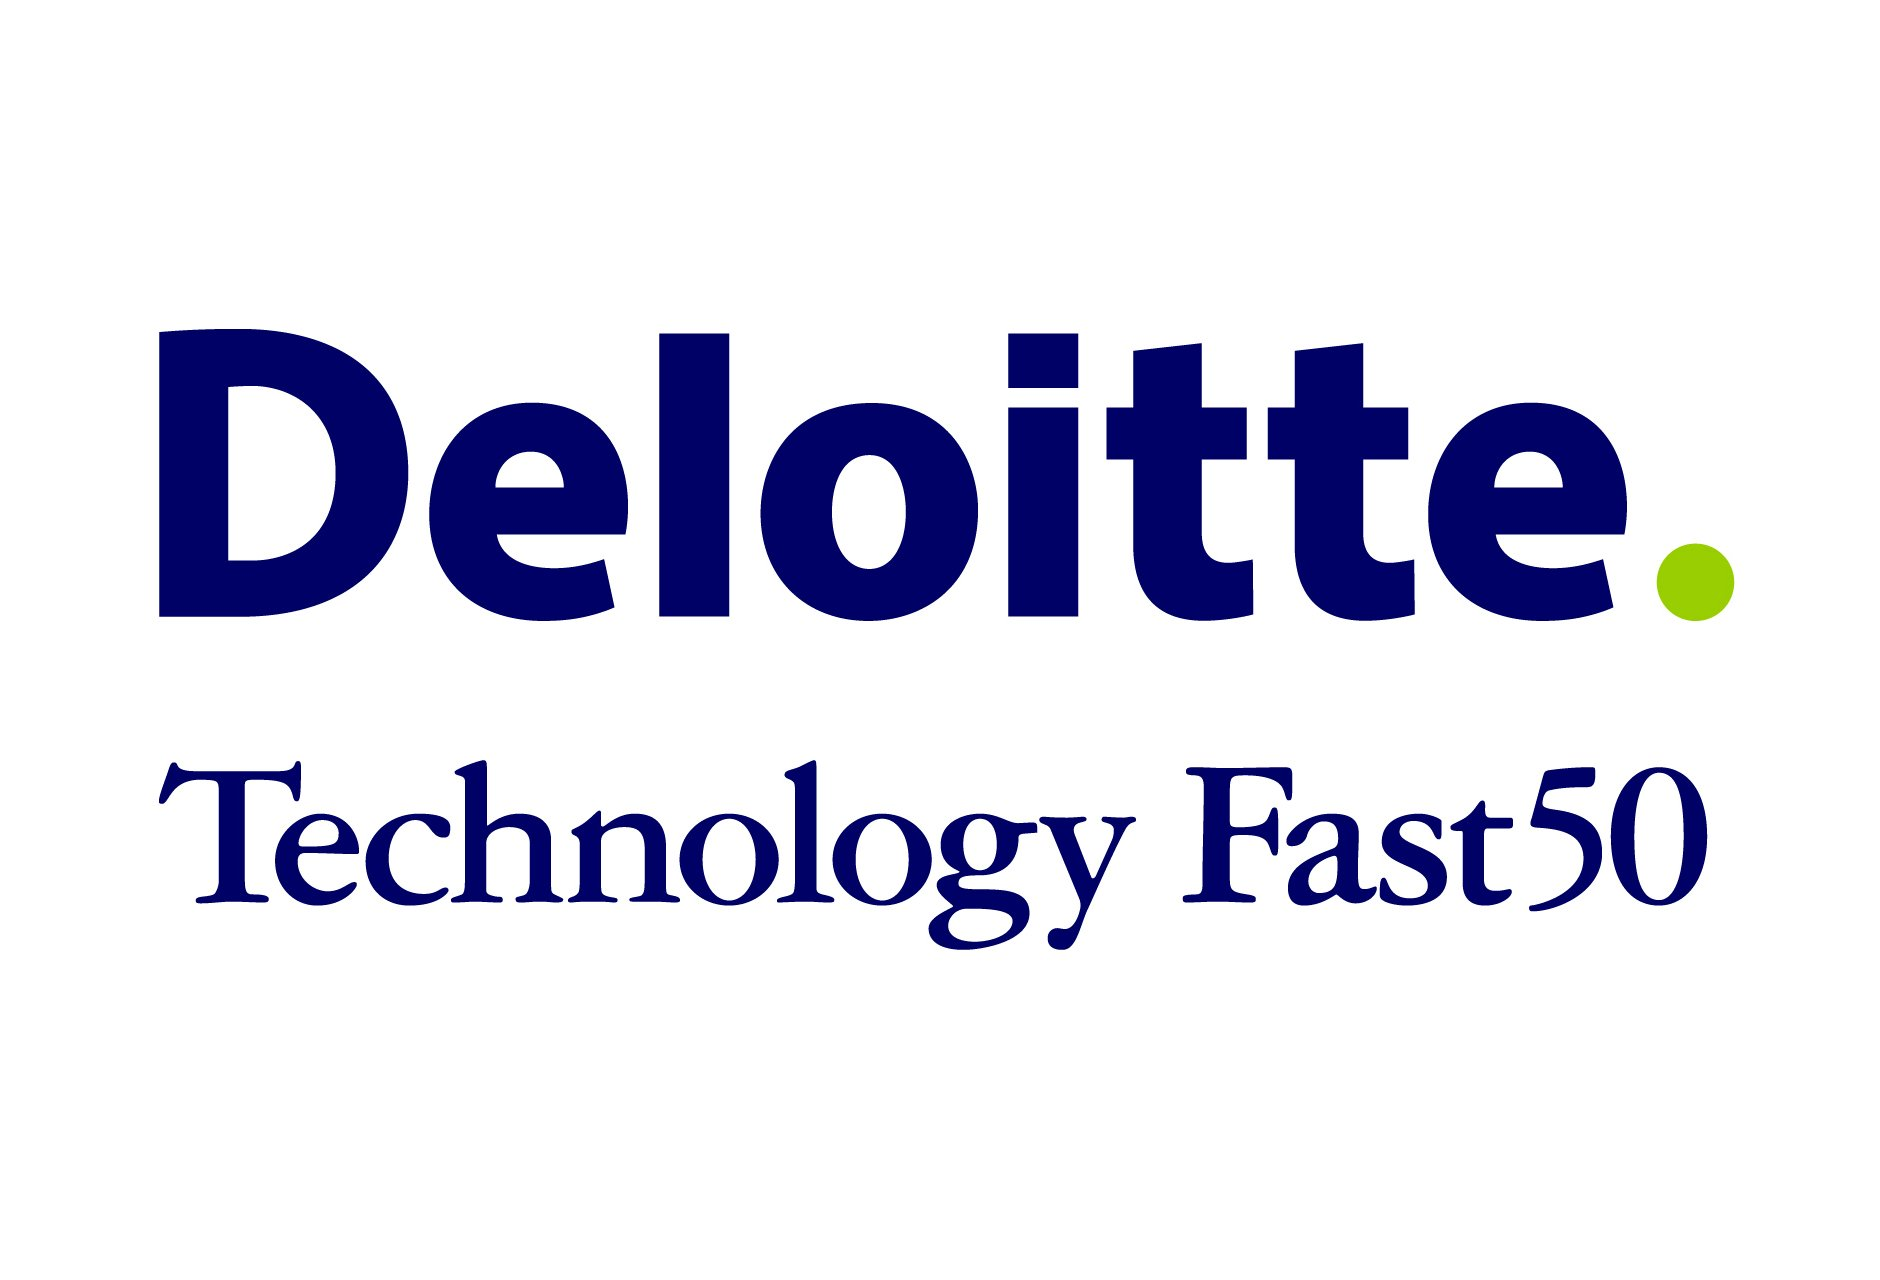 Smart Traffic Achieve Ranking in the Deloitte Technology Fast 50